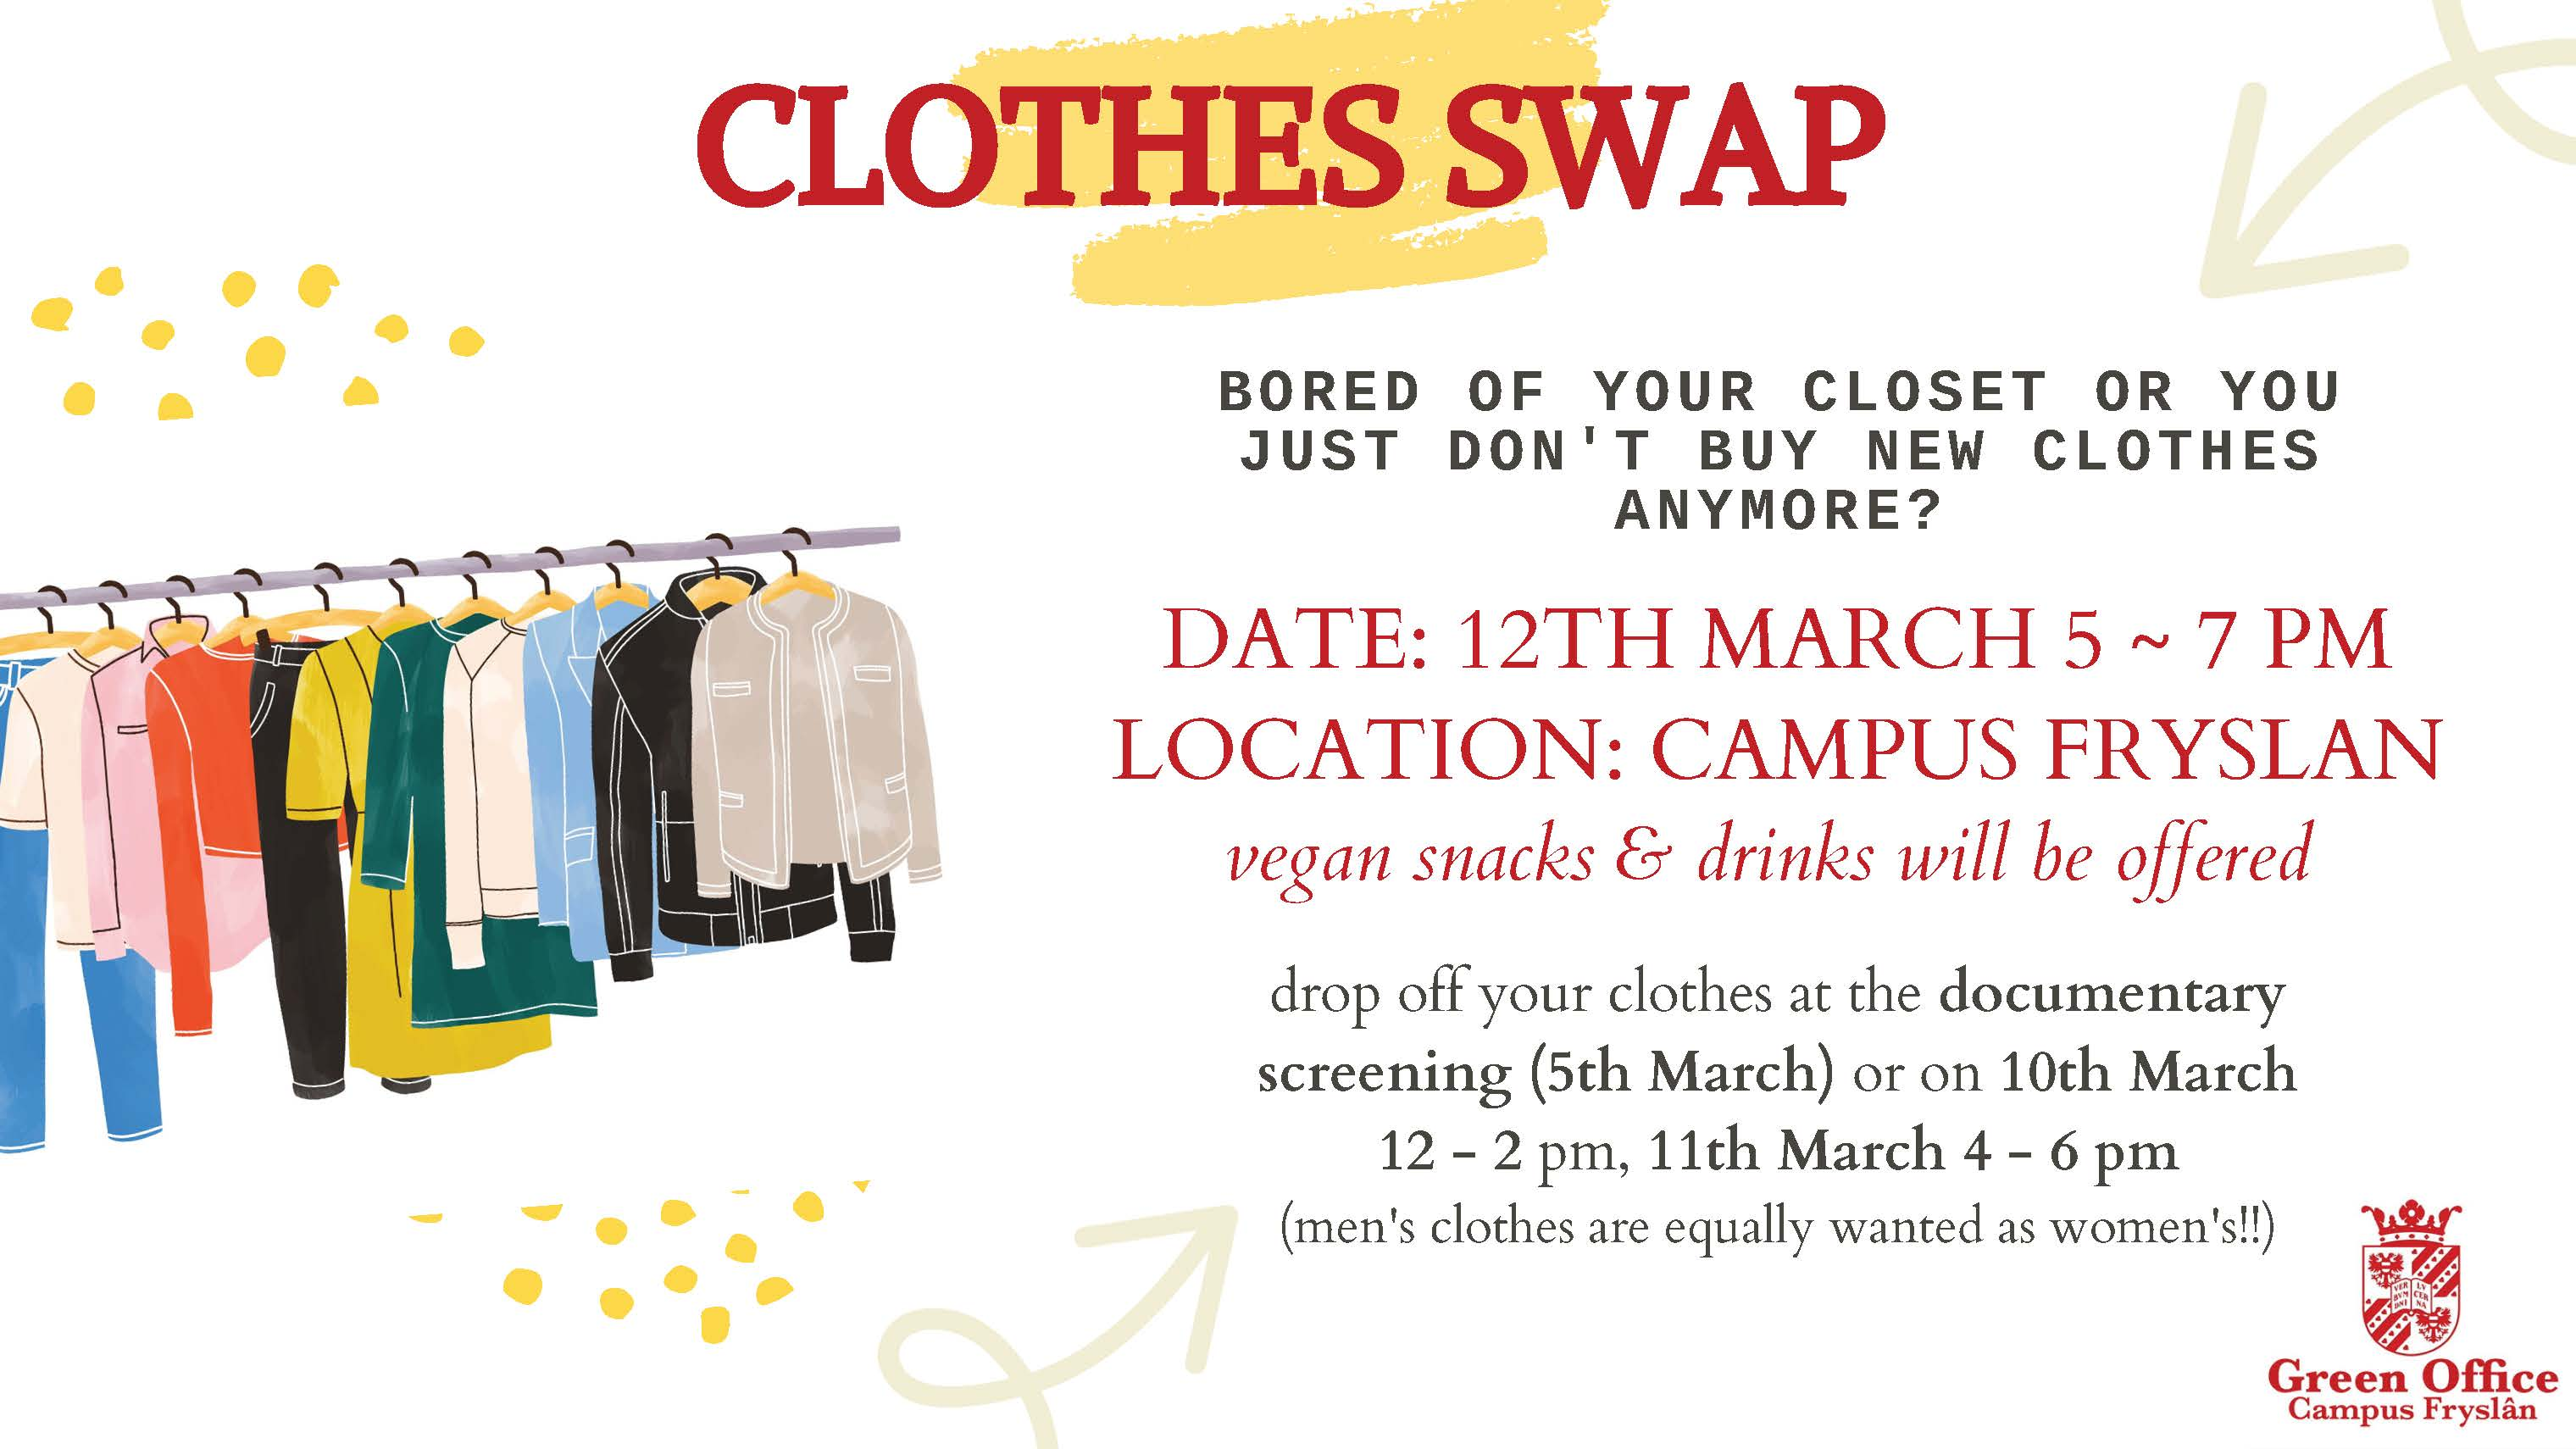 Next week's Clothing Swap